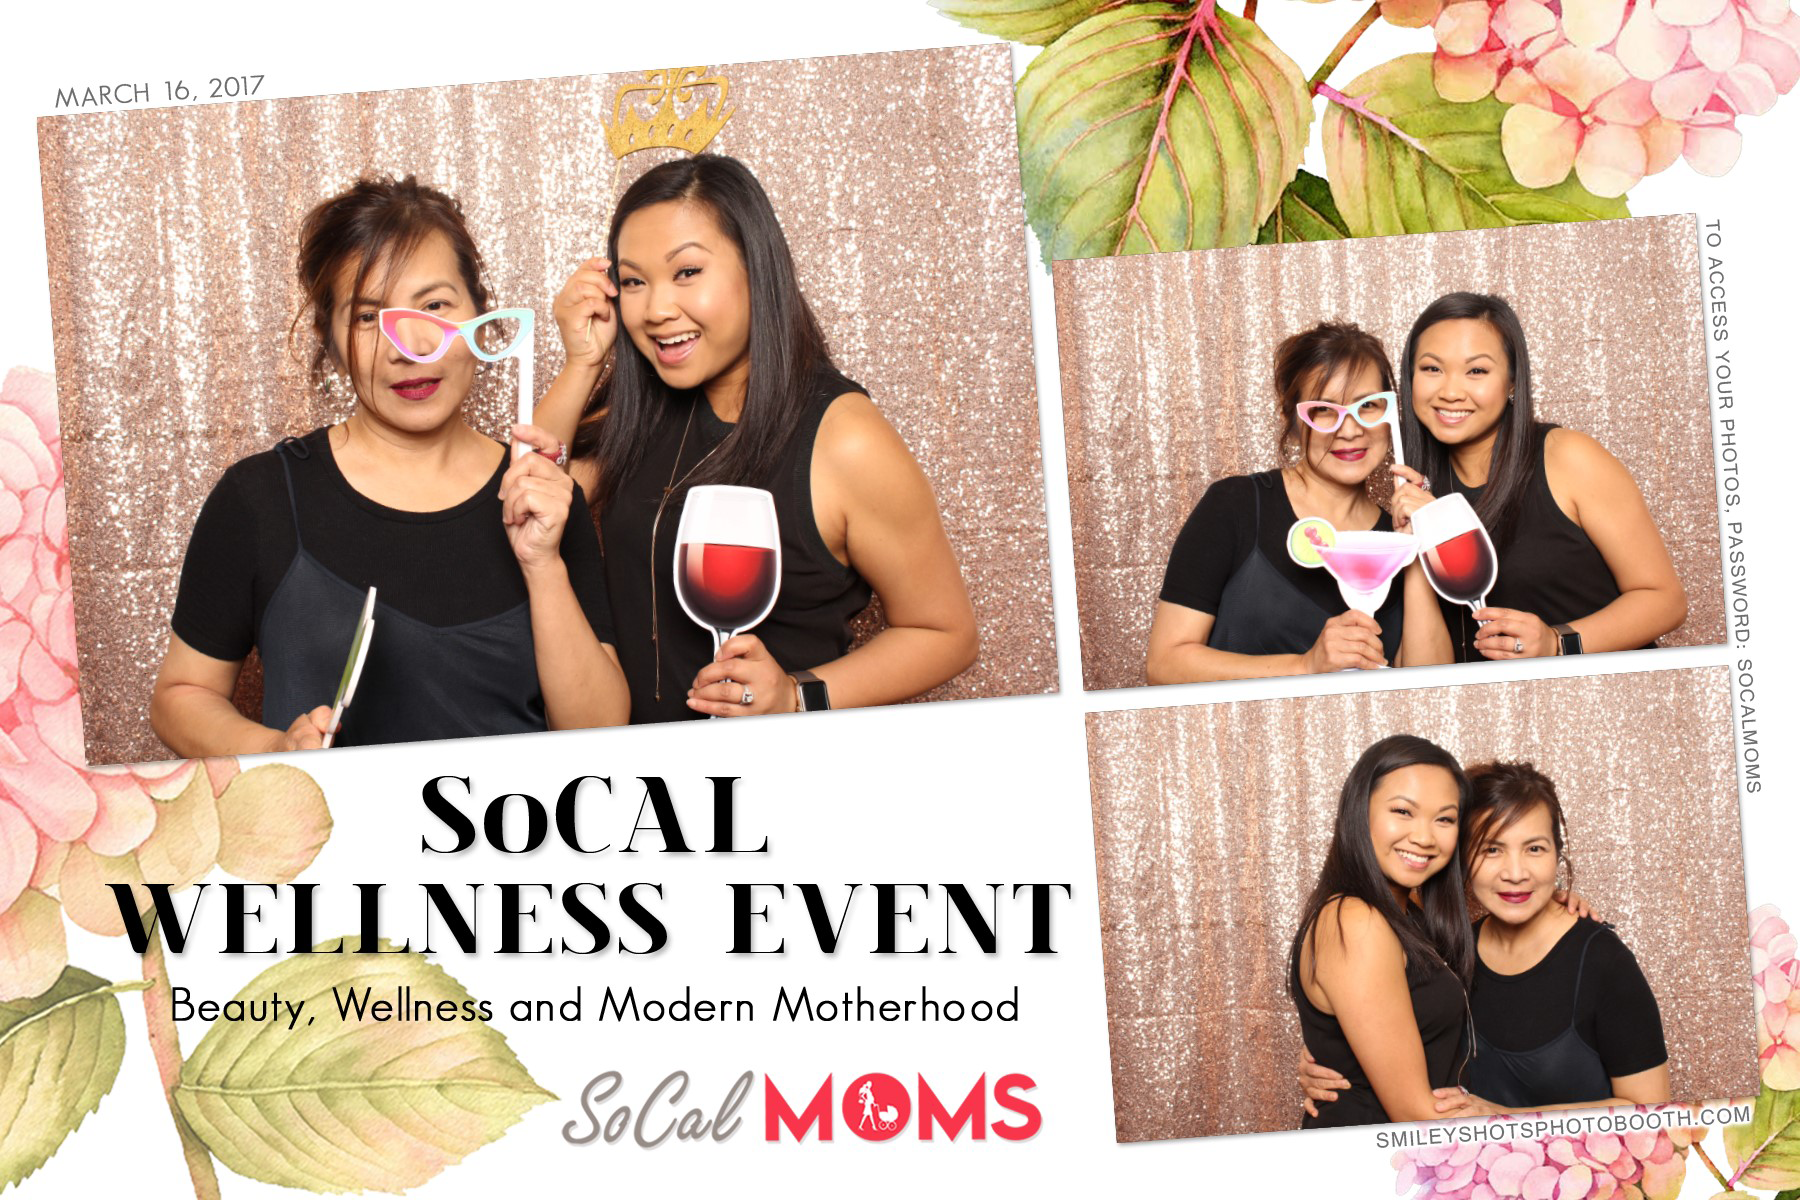 Socal Wellness Event Socal Moms Smiley Shots Photo Booth Photobooth (11).png